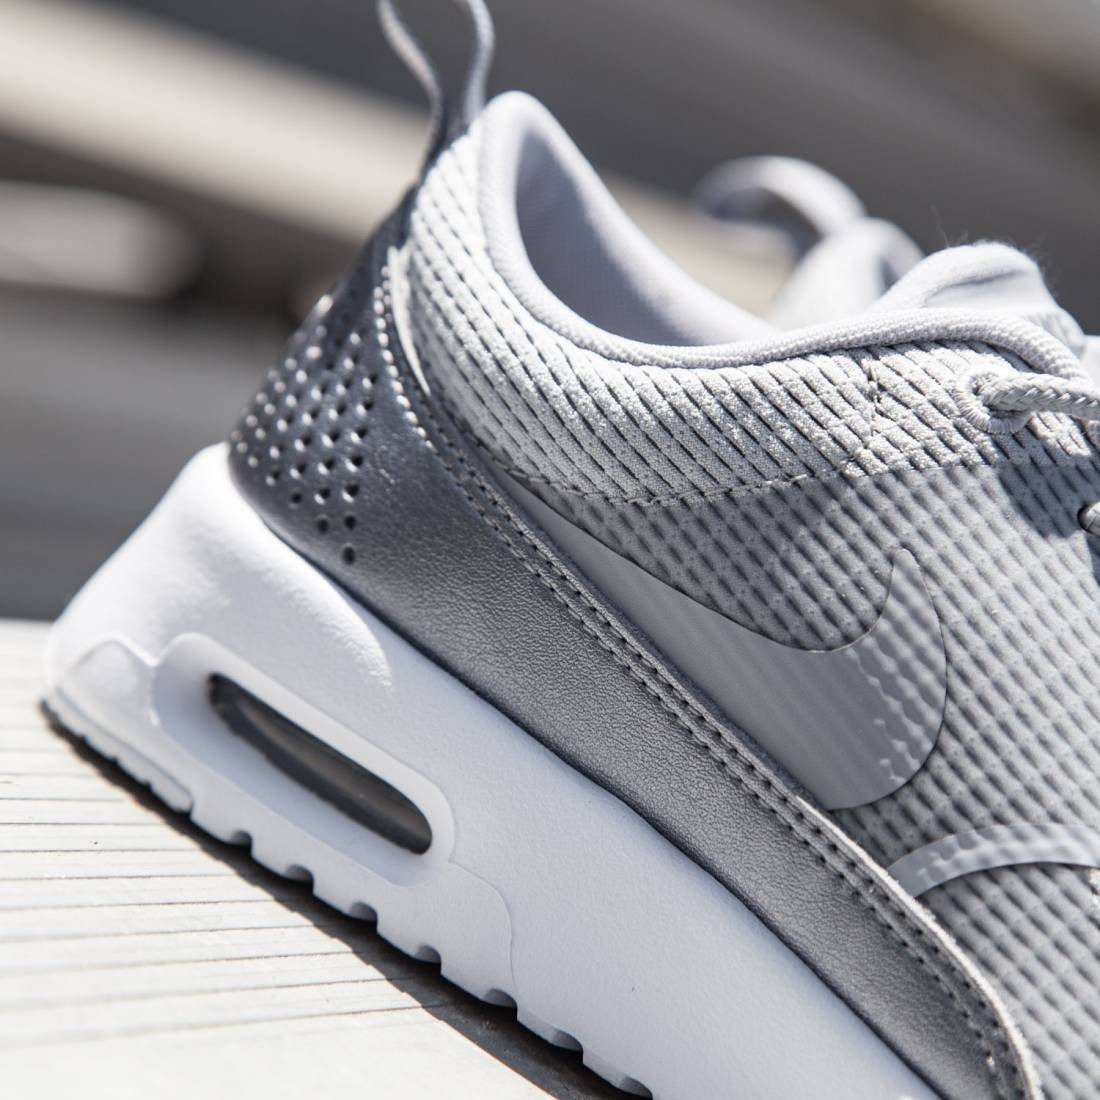 b8d7f48c6c Nike Women Air Max Thea Textile (wolf grey / white / mtlc cool grey / wolf  grey)